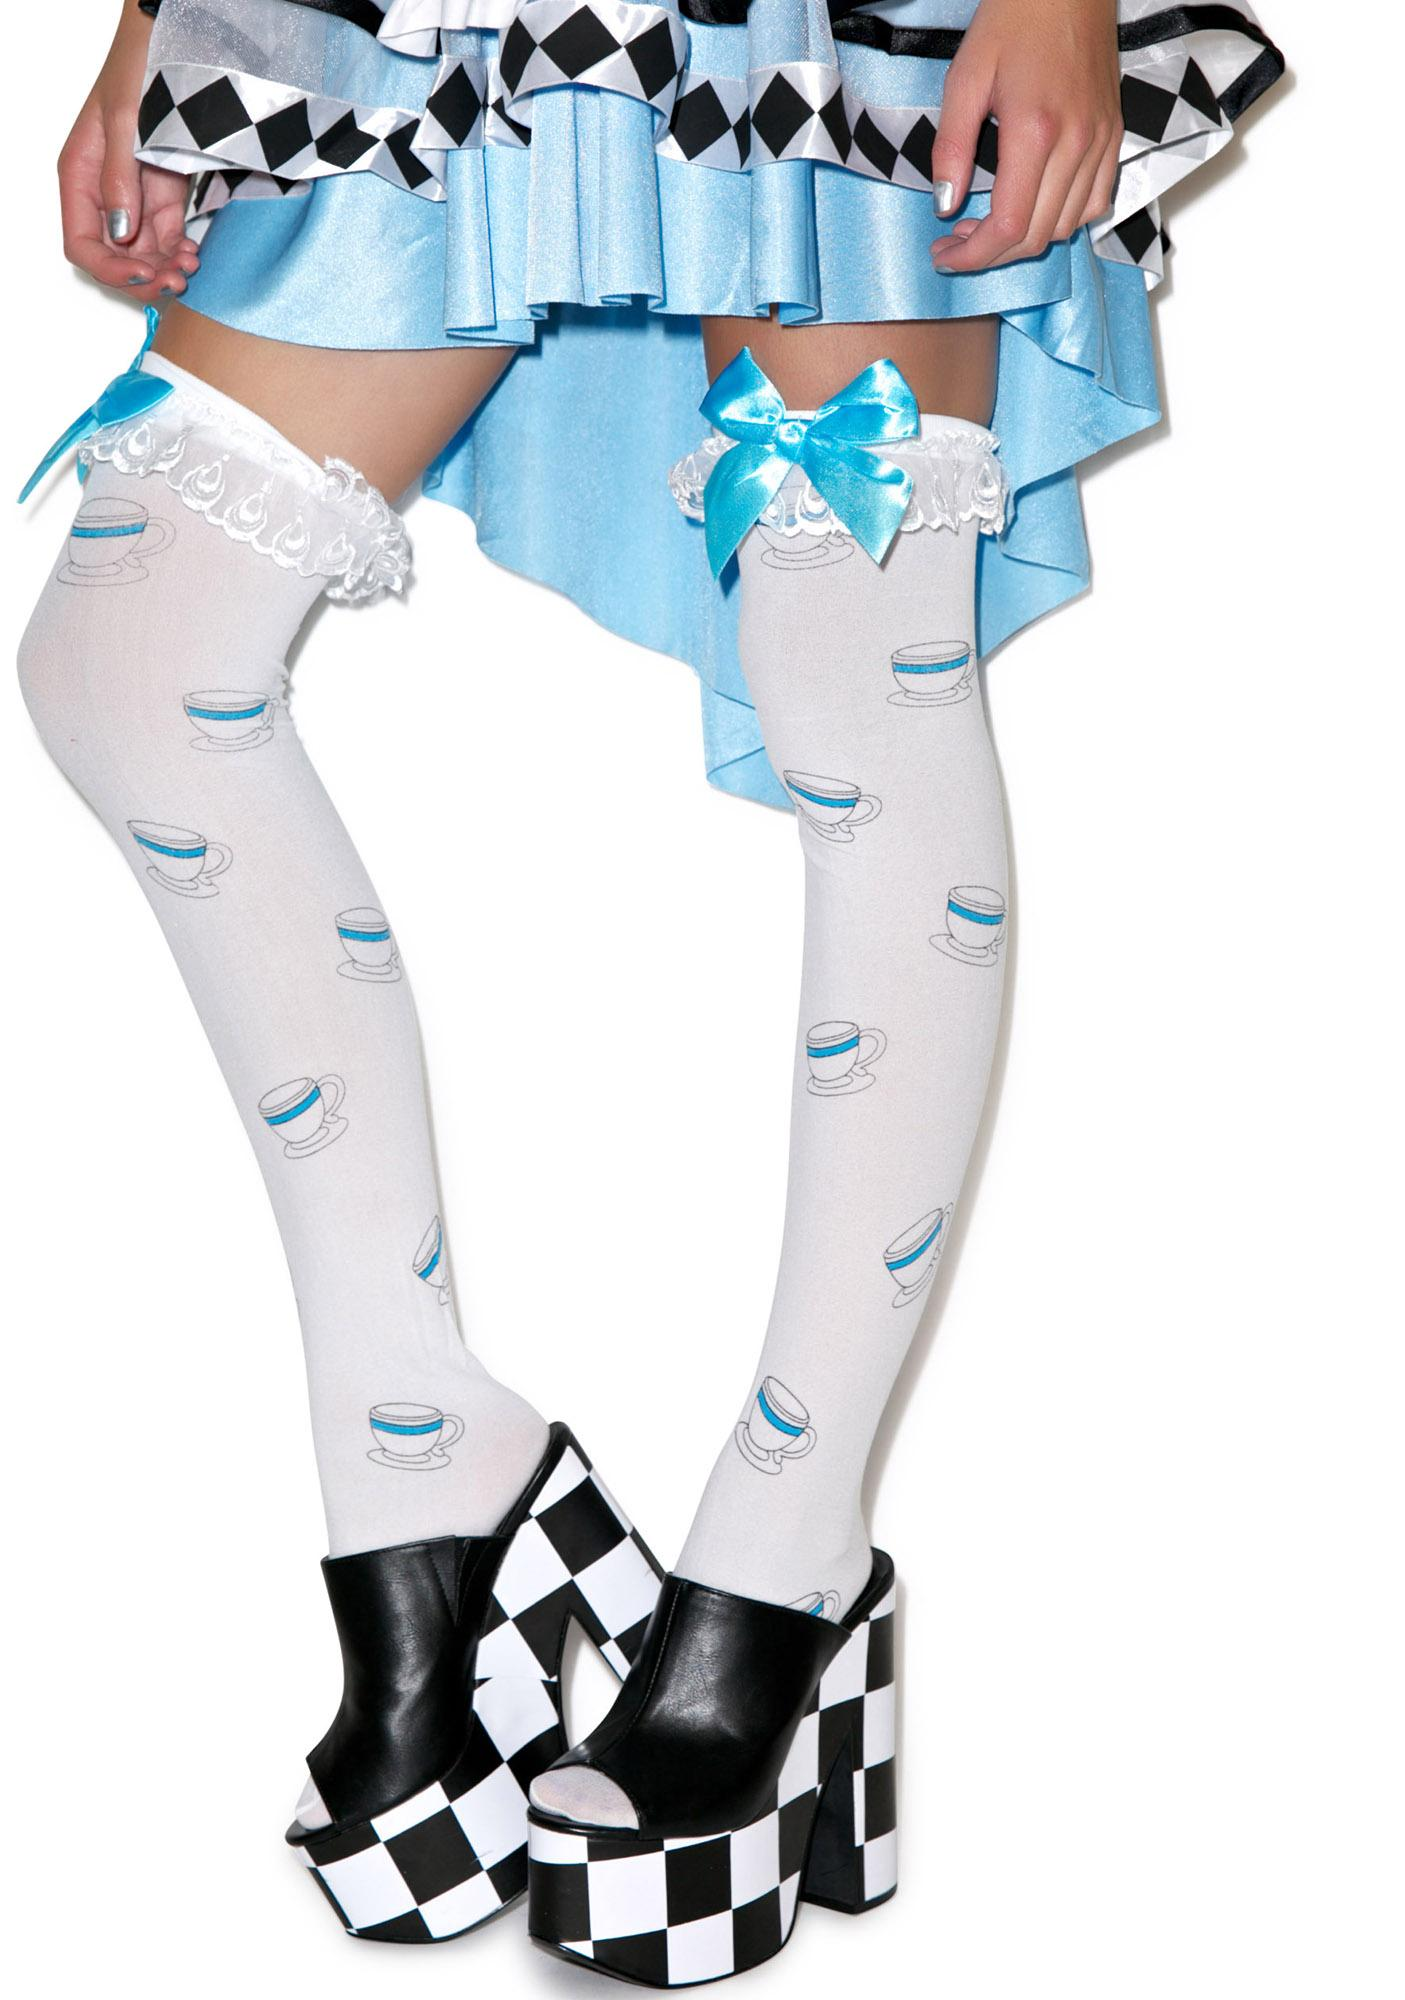 Tea Cup Ruffle Thigh Highs